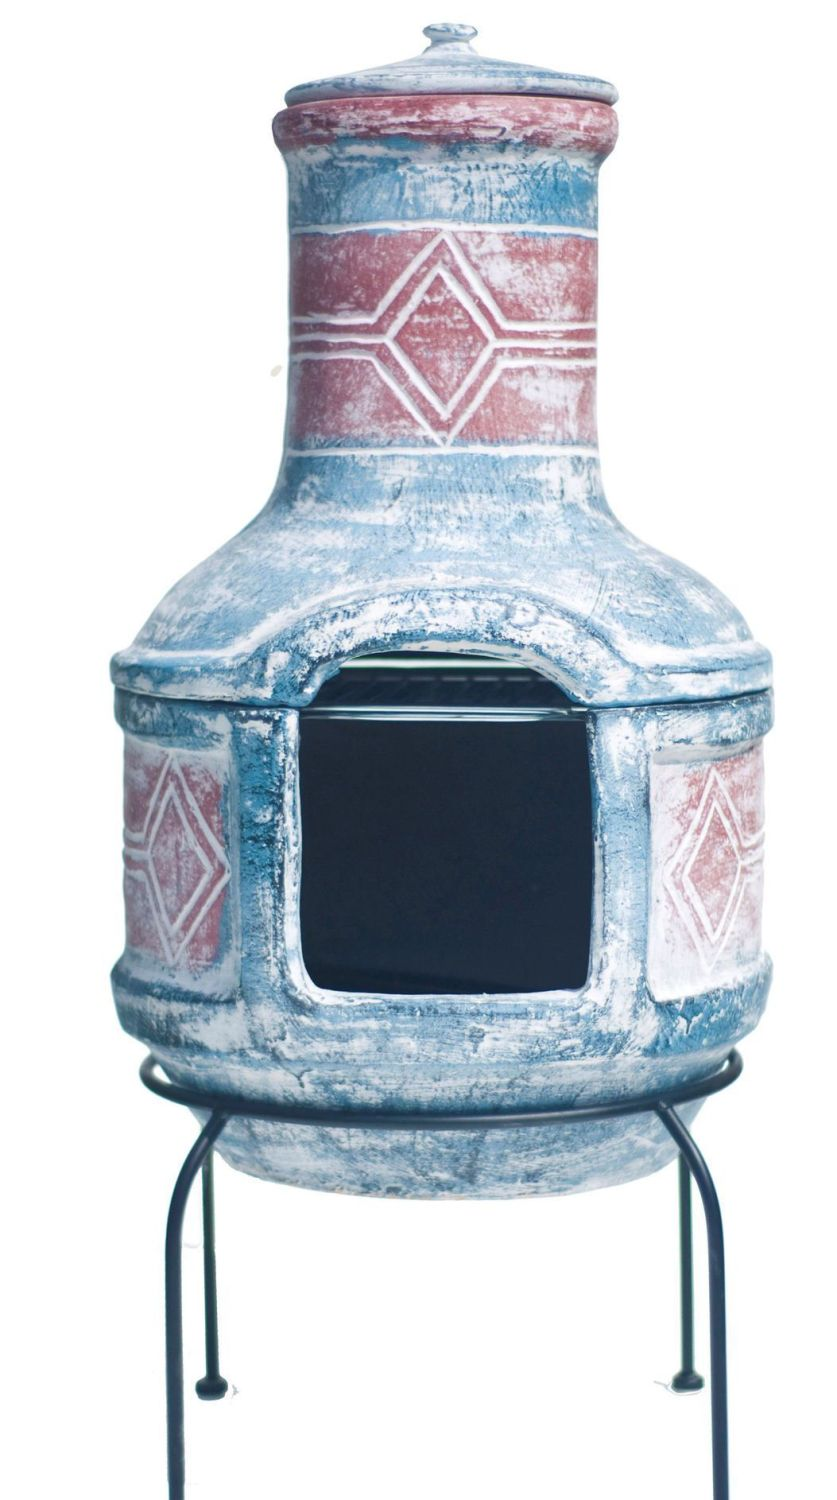 La Hacienda Clay Chimenea Chiminea - Geometric Design with Grill